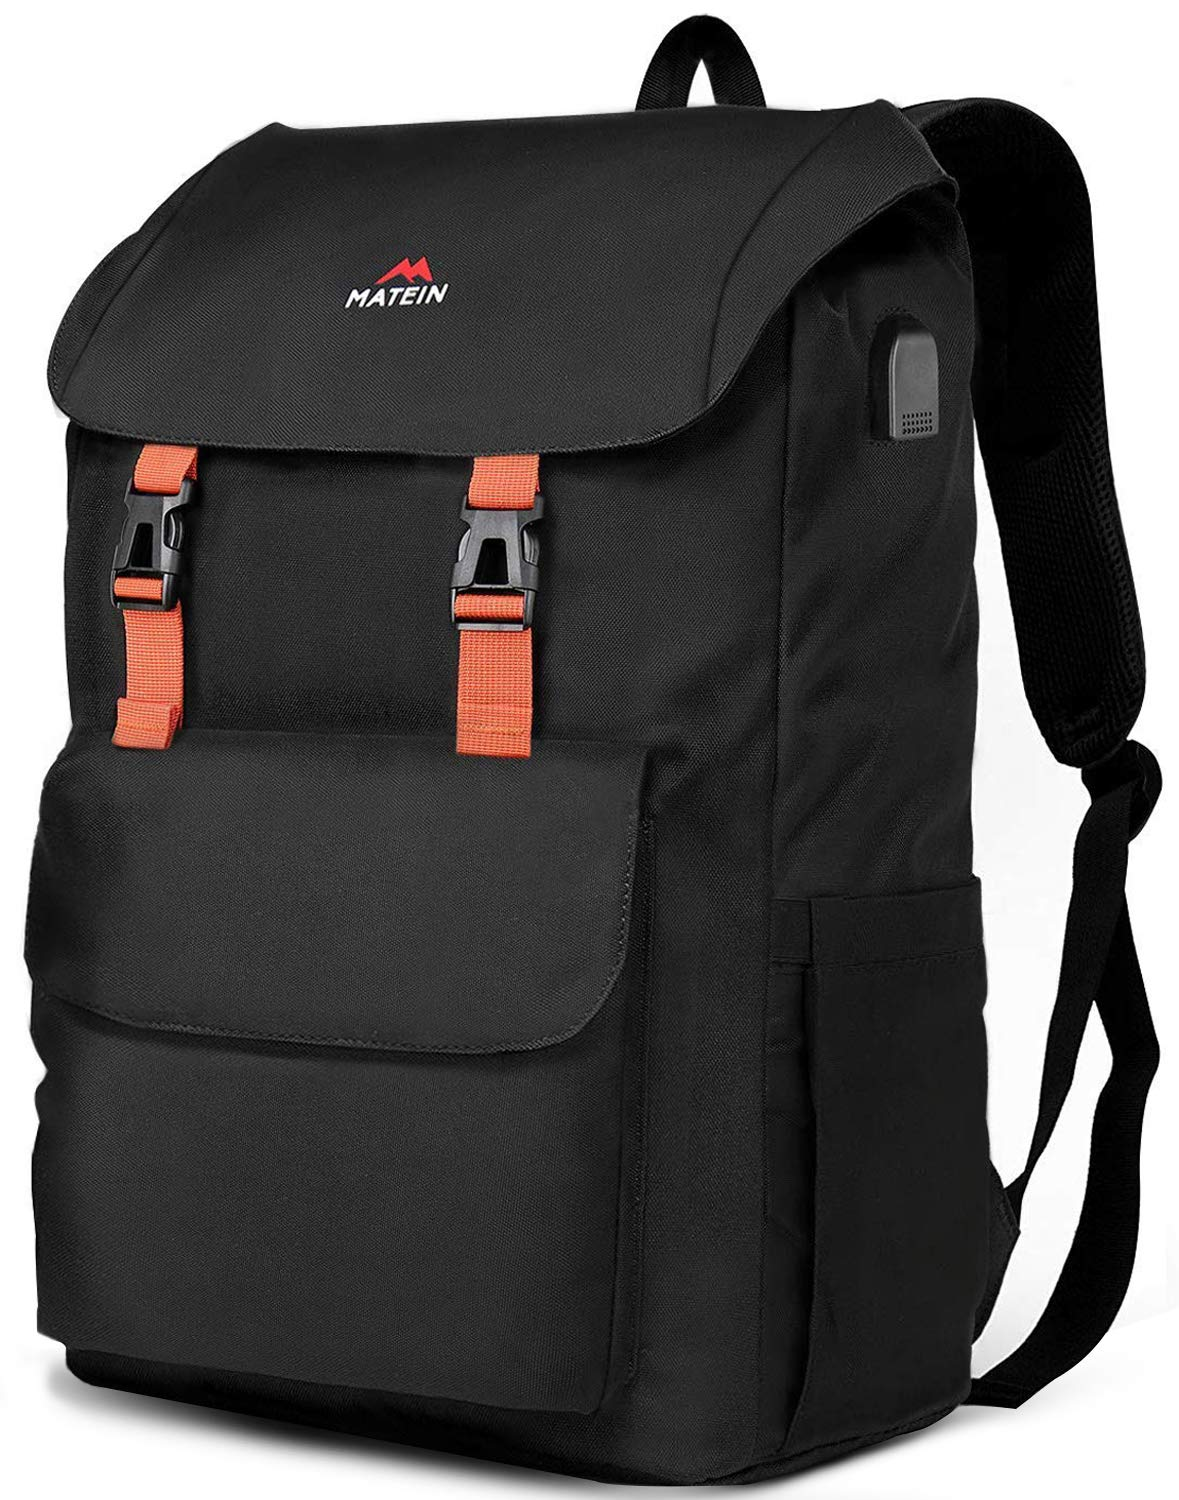 MATEIN 17 Inch Laptop Backpack, Large School Backpacks Waterproof College Bookbag for Men Women, Lightweight Travel Computer Bag with USB Charging Port, Durable Outdoor Rucksack fits 17 Inch Laptop by MATEIN